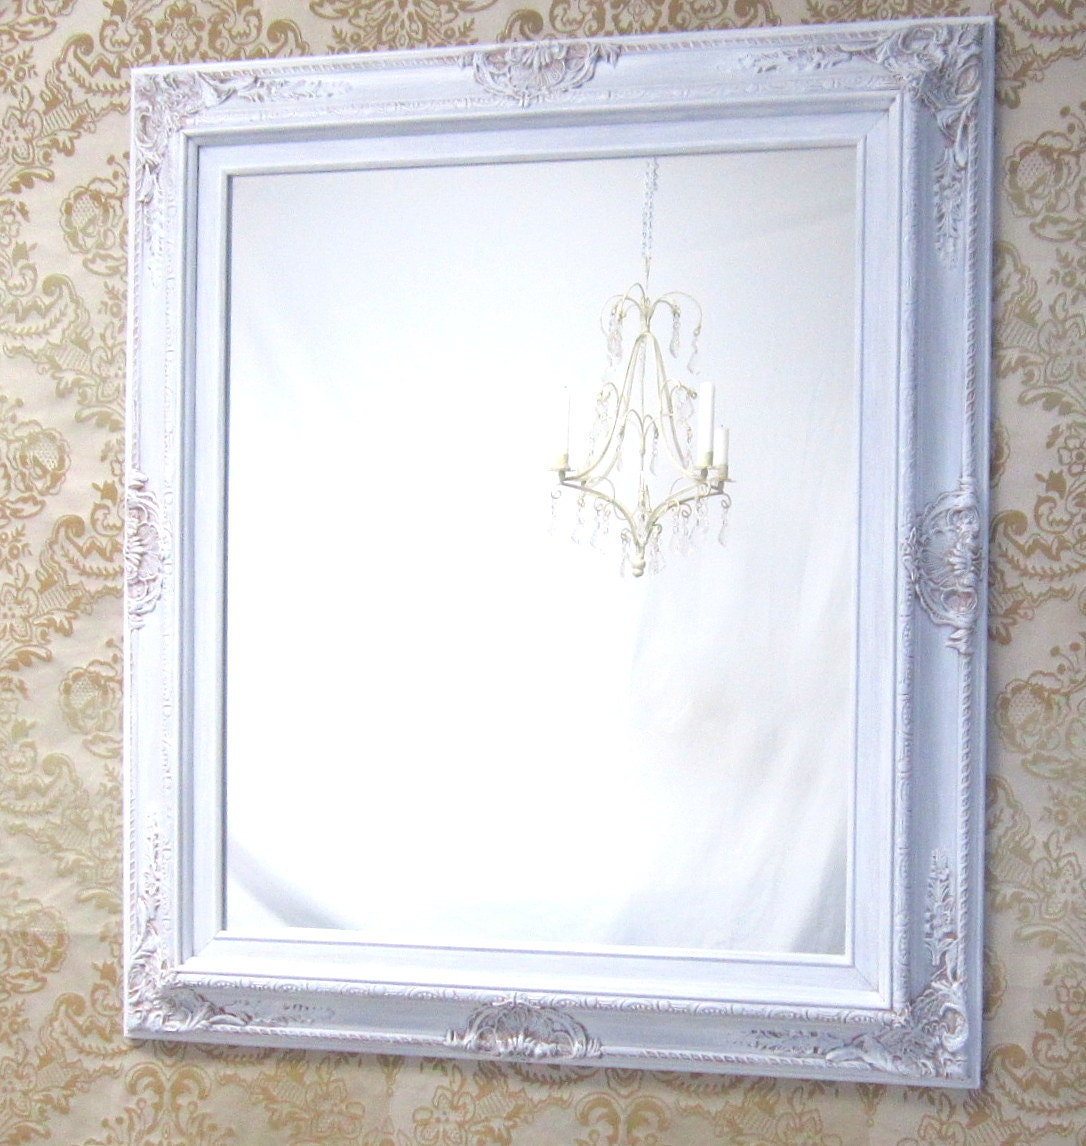 WHITE FRAMED MIRROR For Sale Regency Decor Unique Vanity